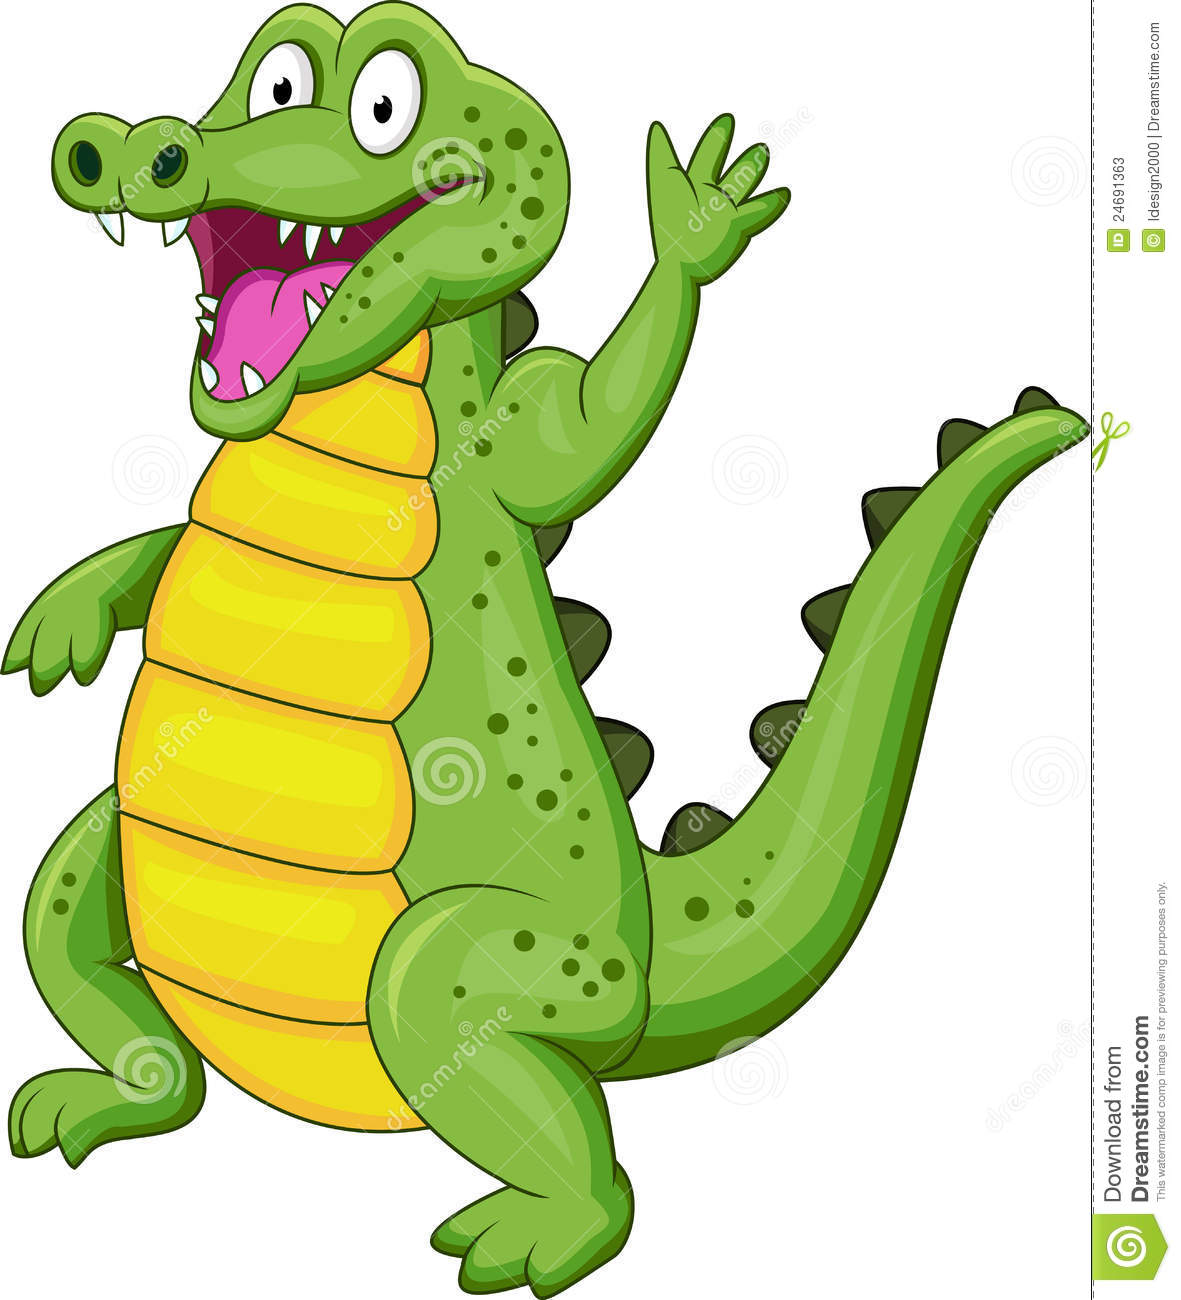 Crocodile cartoon stock vector. Illustration of comic ... - photo#4